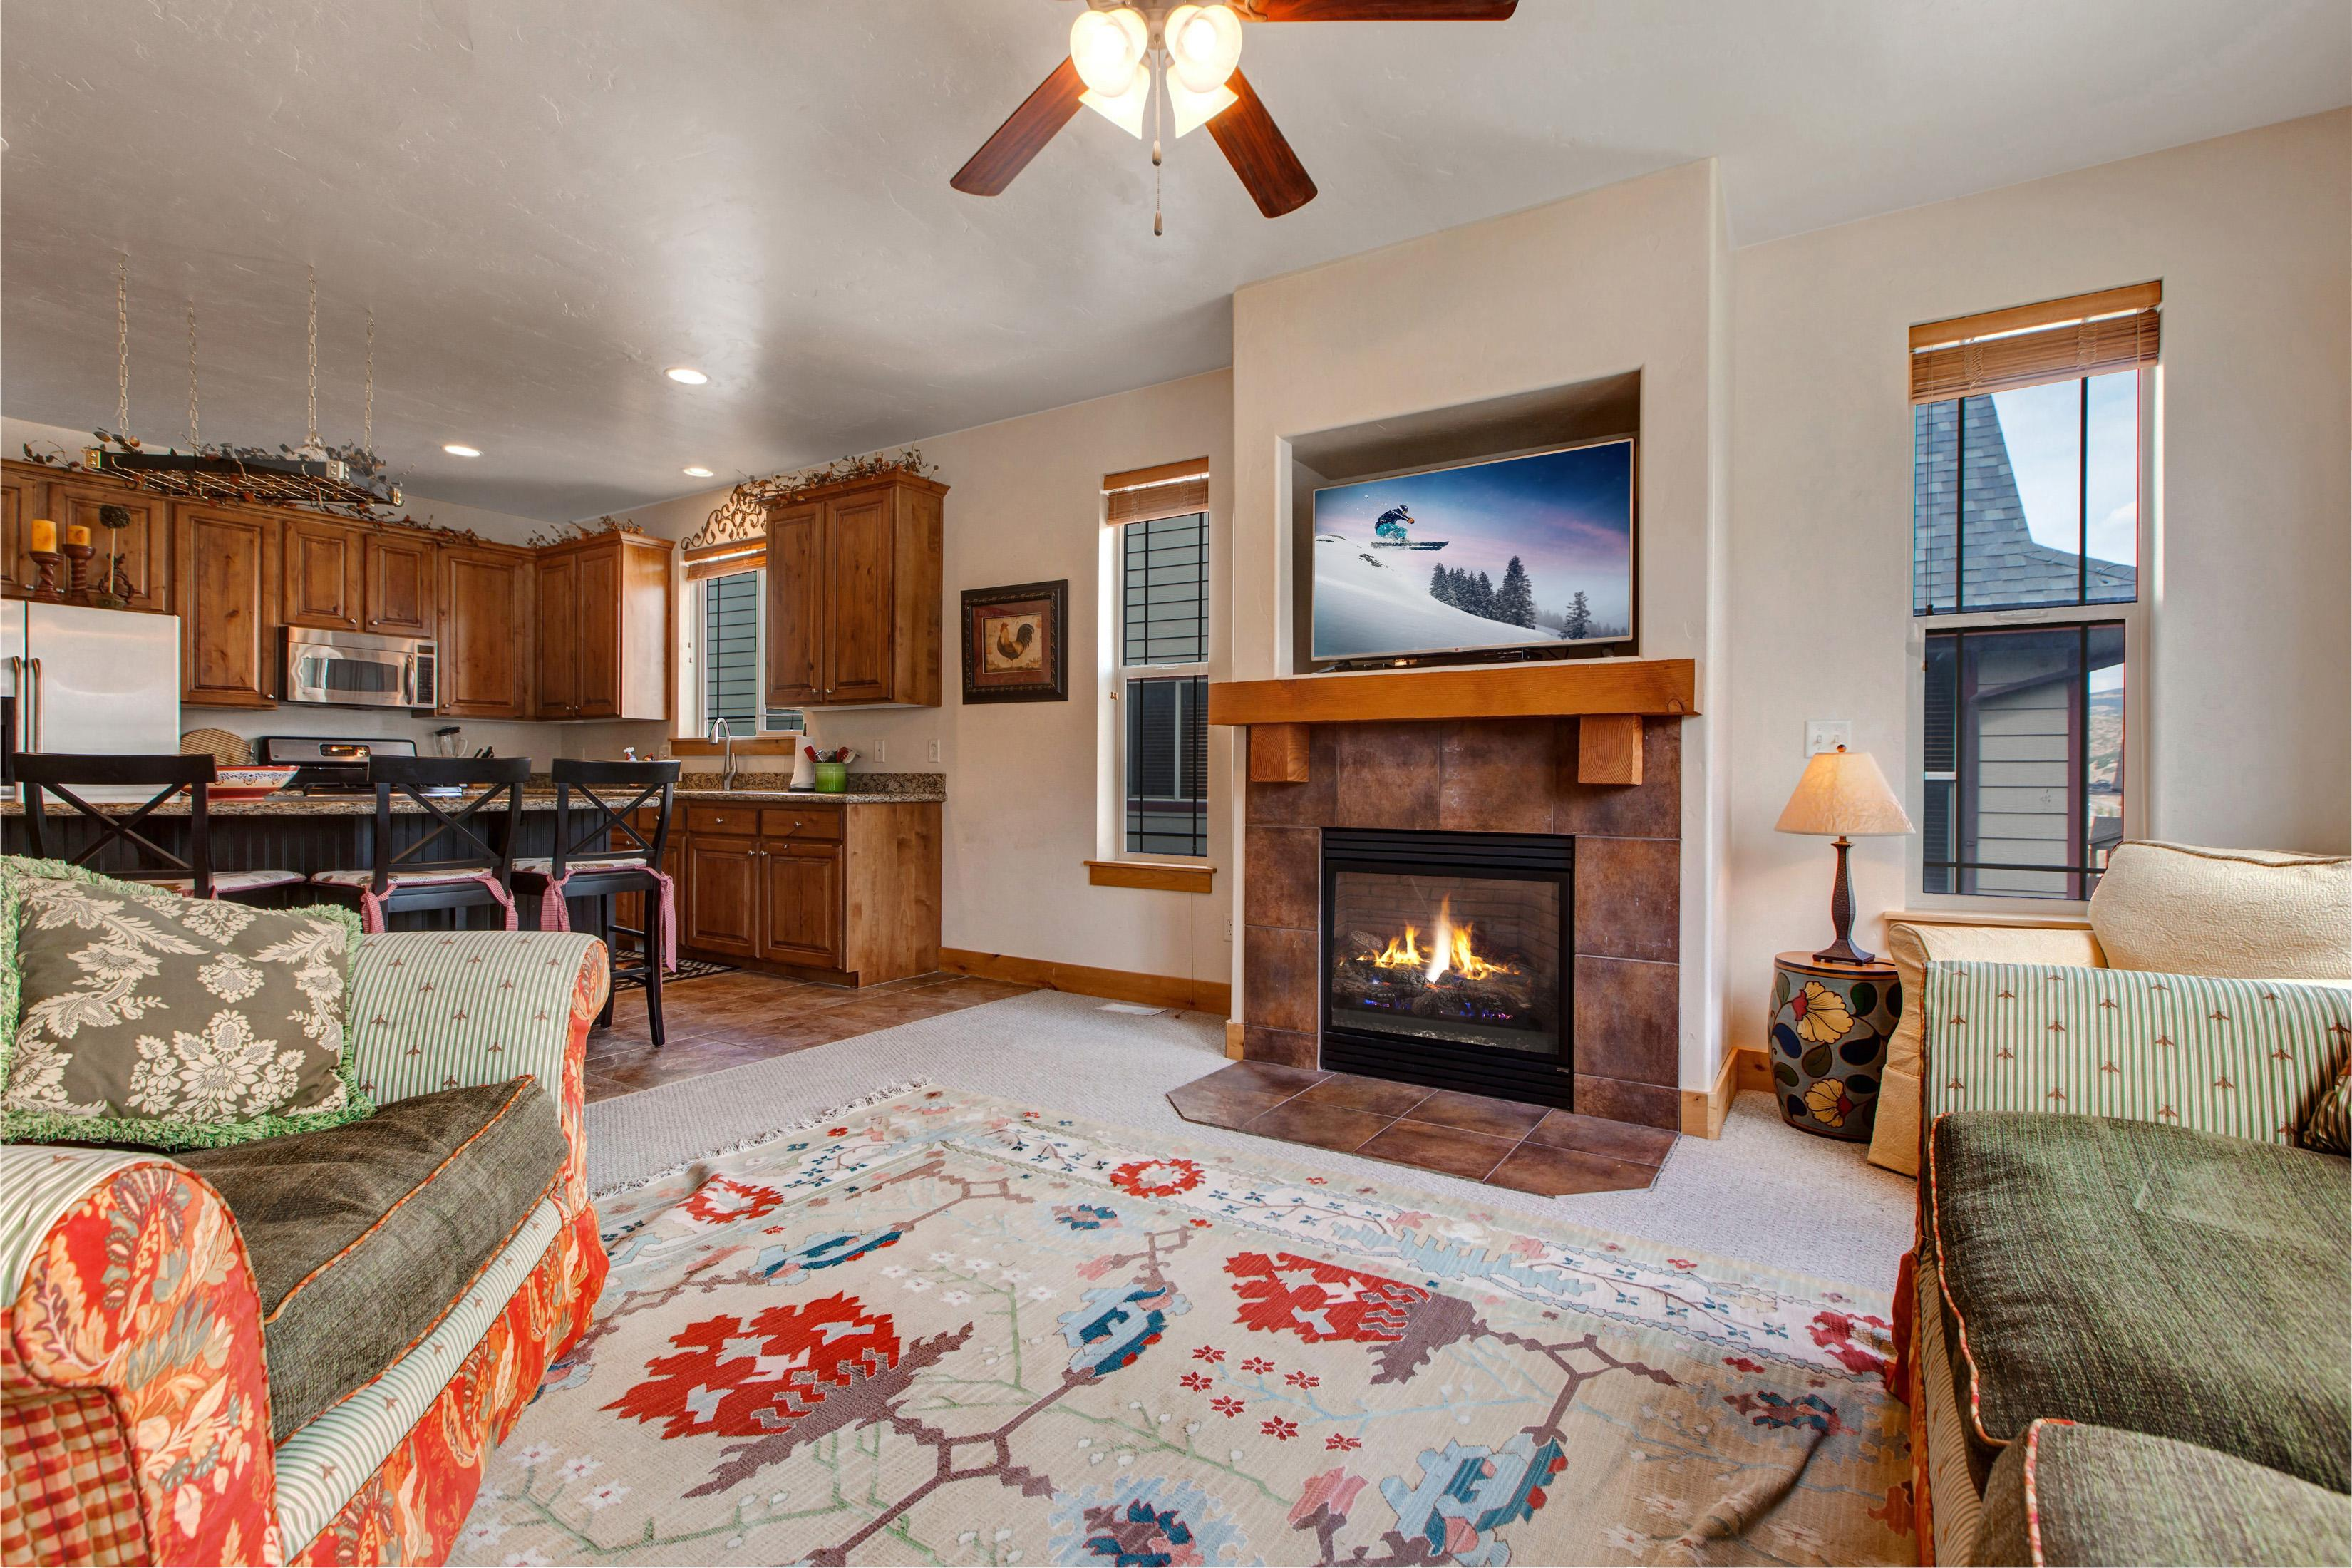 Welcome to Park City! Watch a movie on the flat screen TV, and enjoy complimentary Wi-Fi.